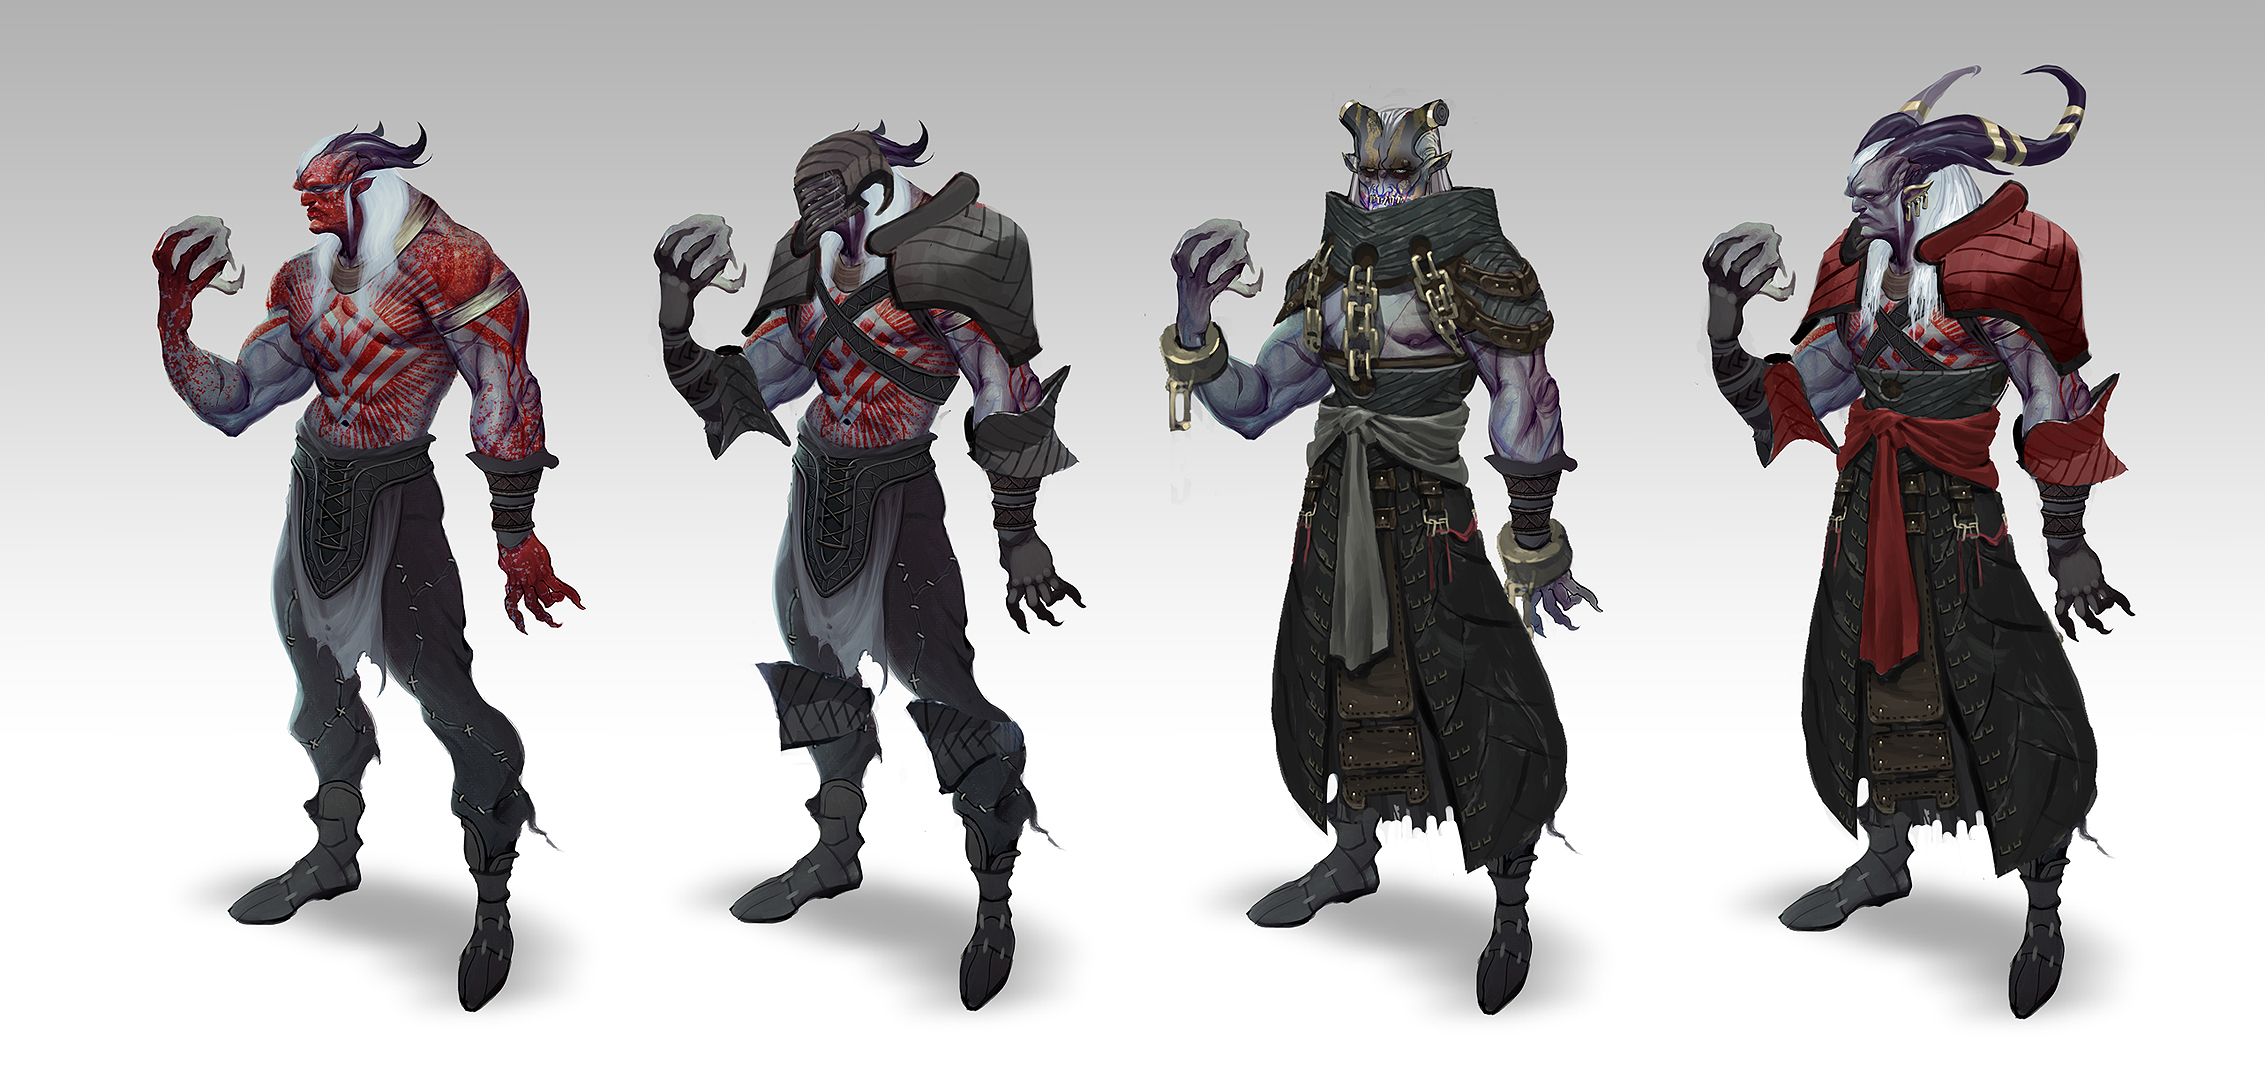 On Dwarves Elves And Qunari Bioware Blog Origins message board is available to provide feedback on our trainers or cheats. on dwarves elves and qunari bioware blog